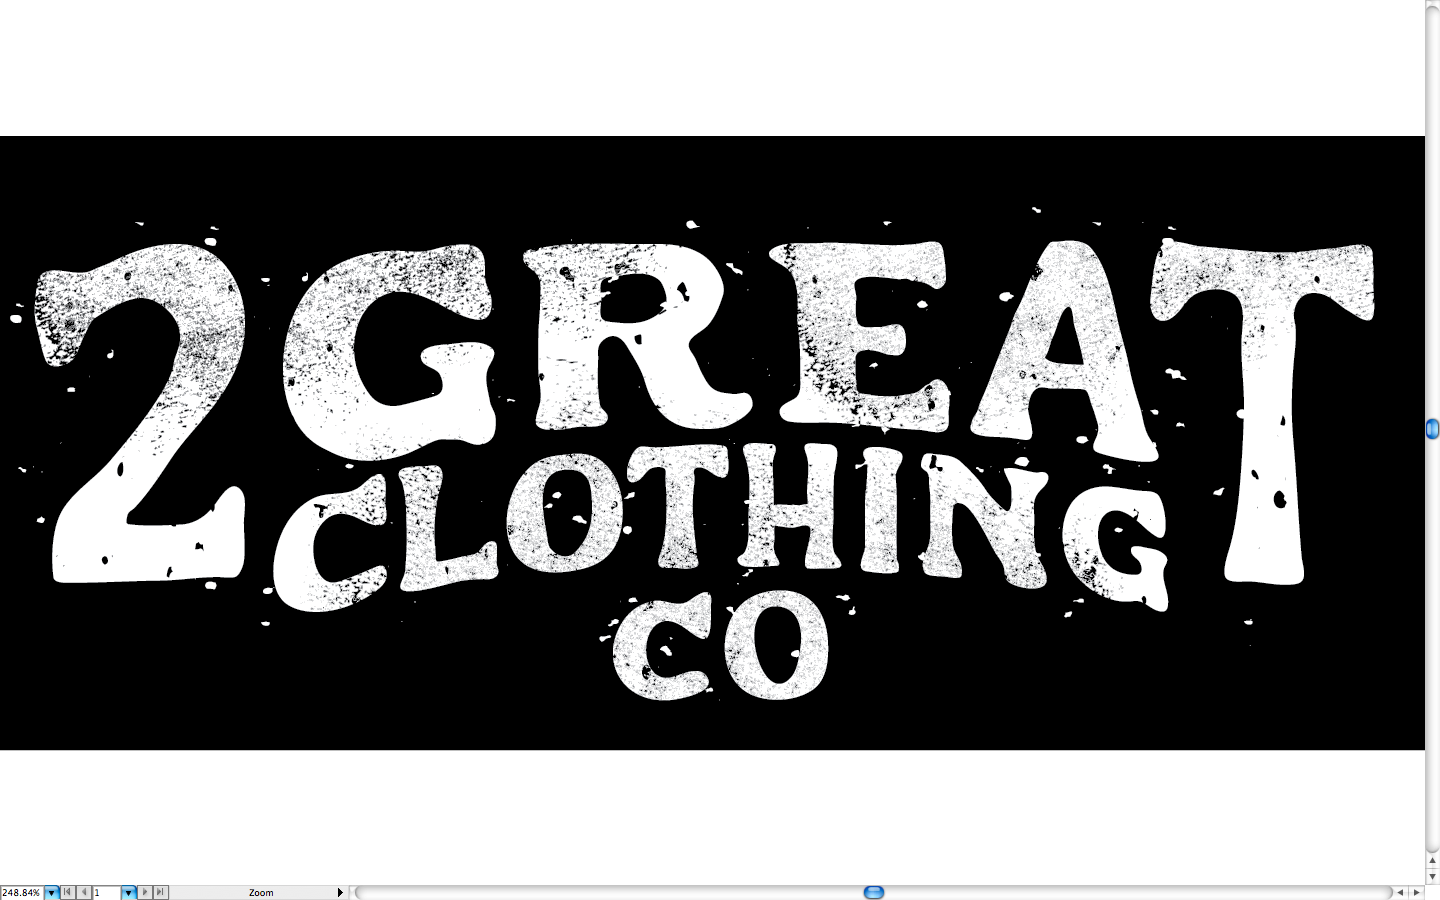 2Great Clothing Co. - image 23 - student project